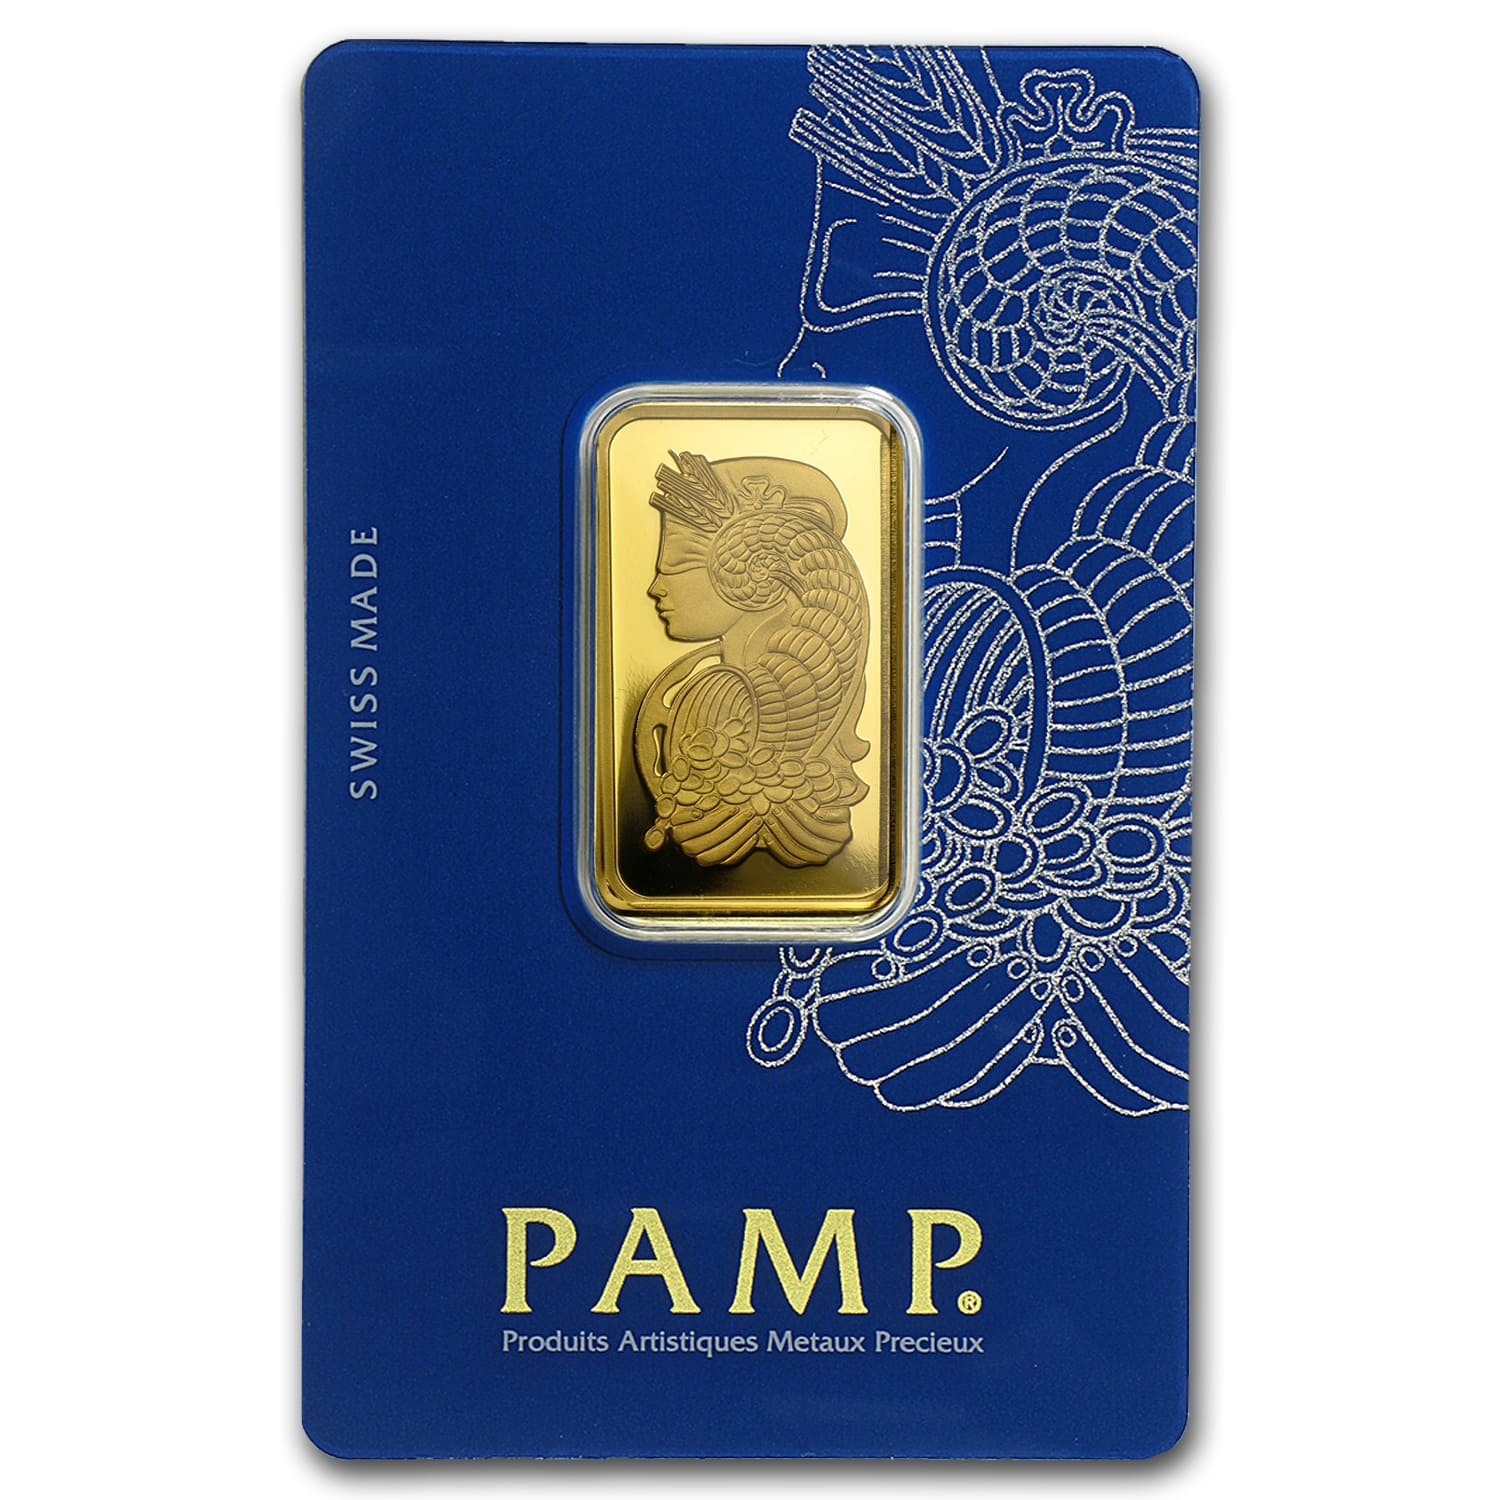 20 gram Gold Bar - PAMP Suisse Fortuna Veriscan® (In Assay)